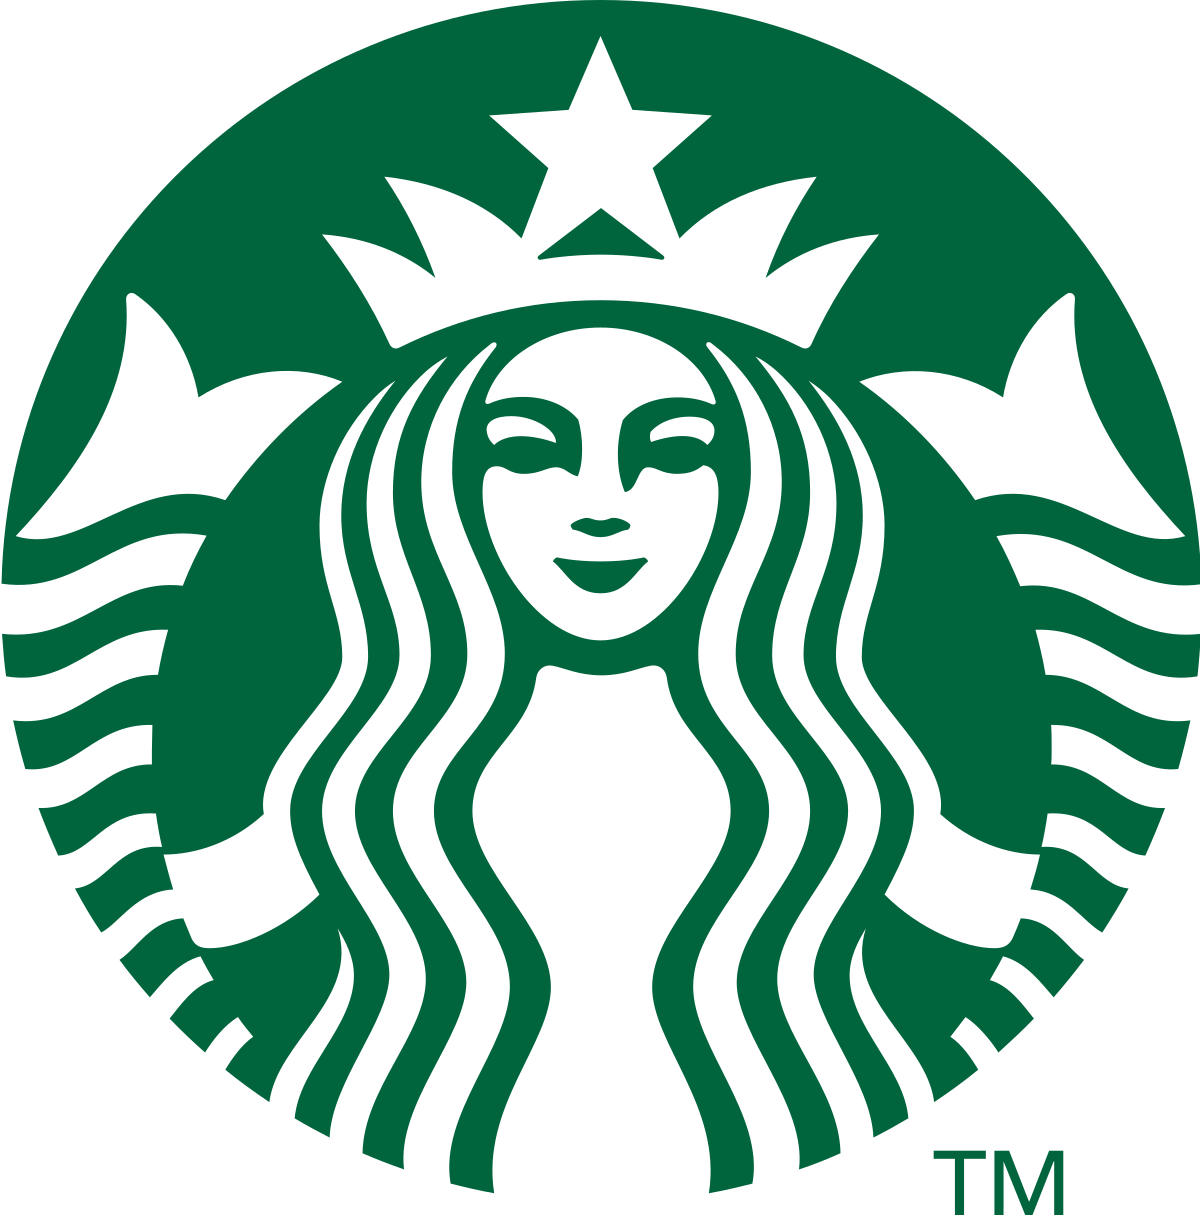 Crisis management learn from starbucks, united airlines to keep your business humming